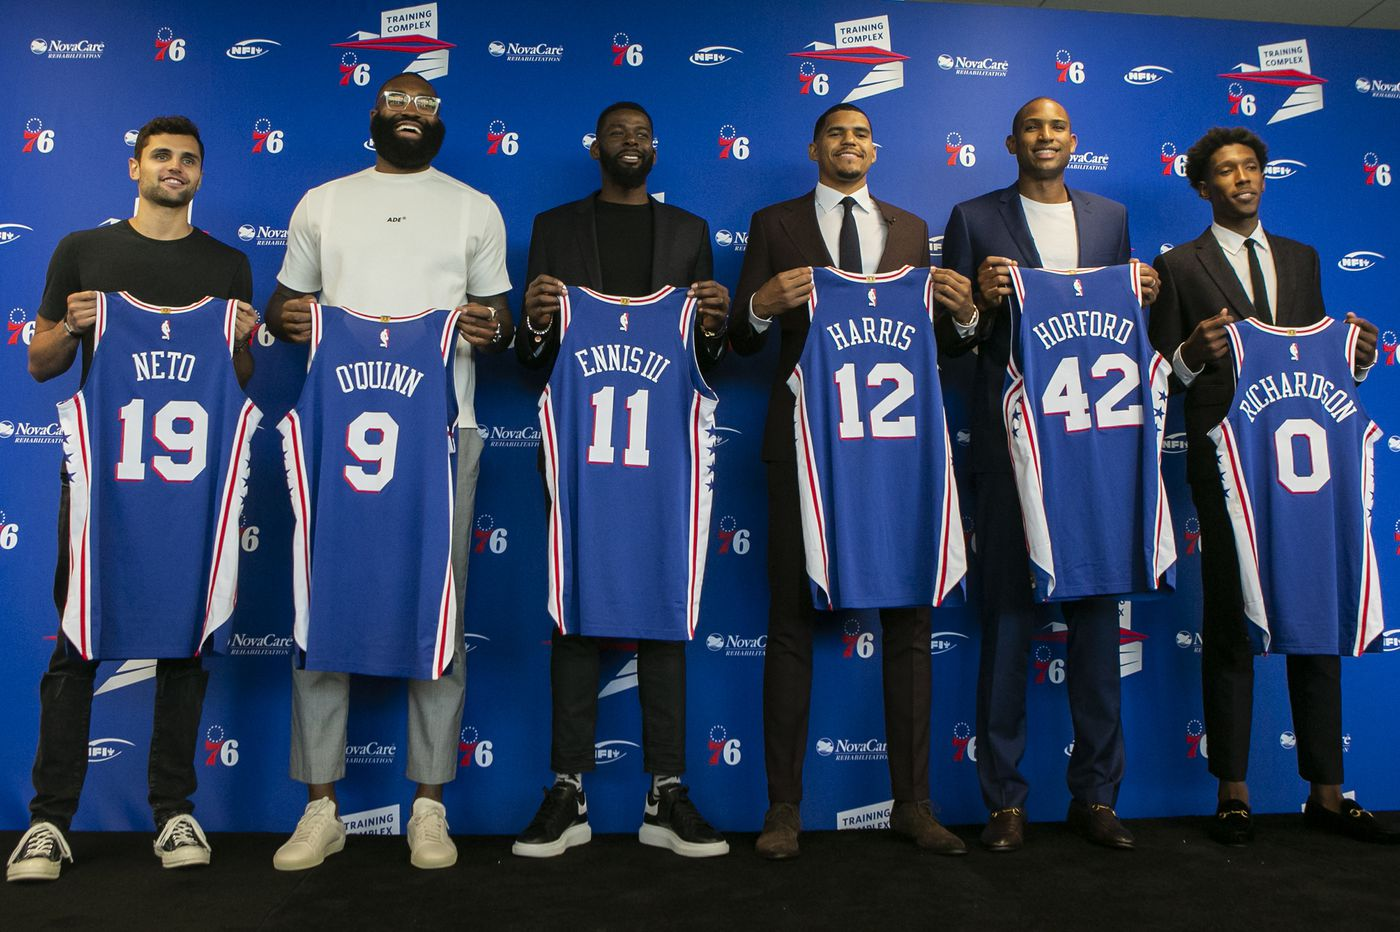 Sources: NBA to consider pushing up free agency period before draft